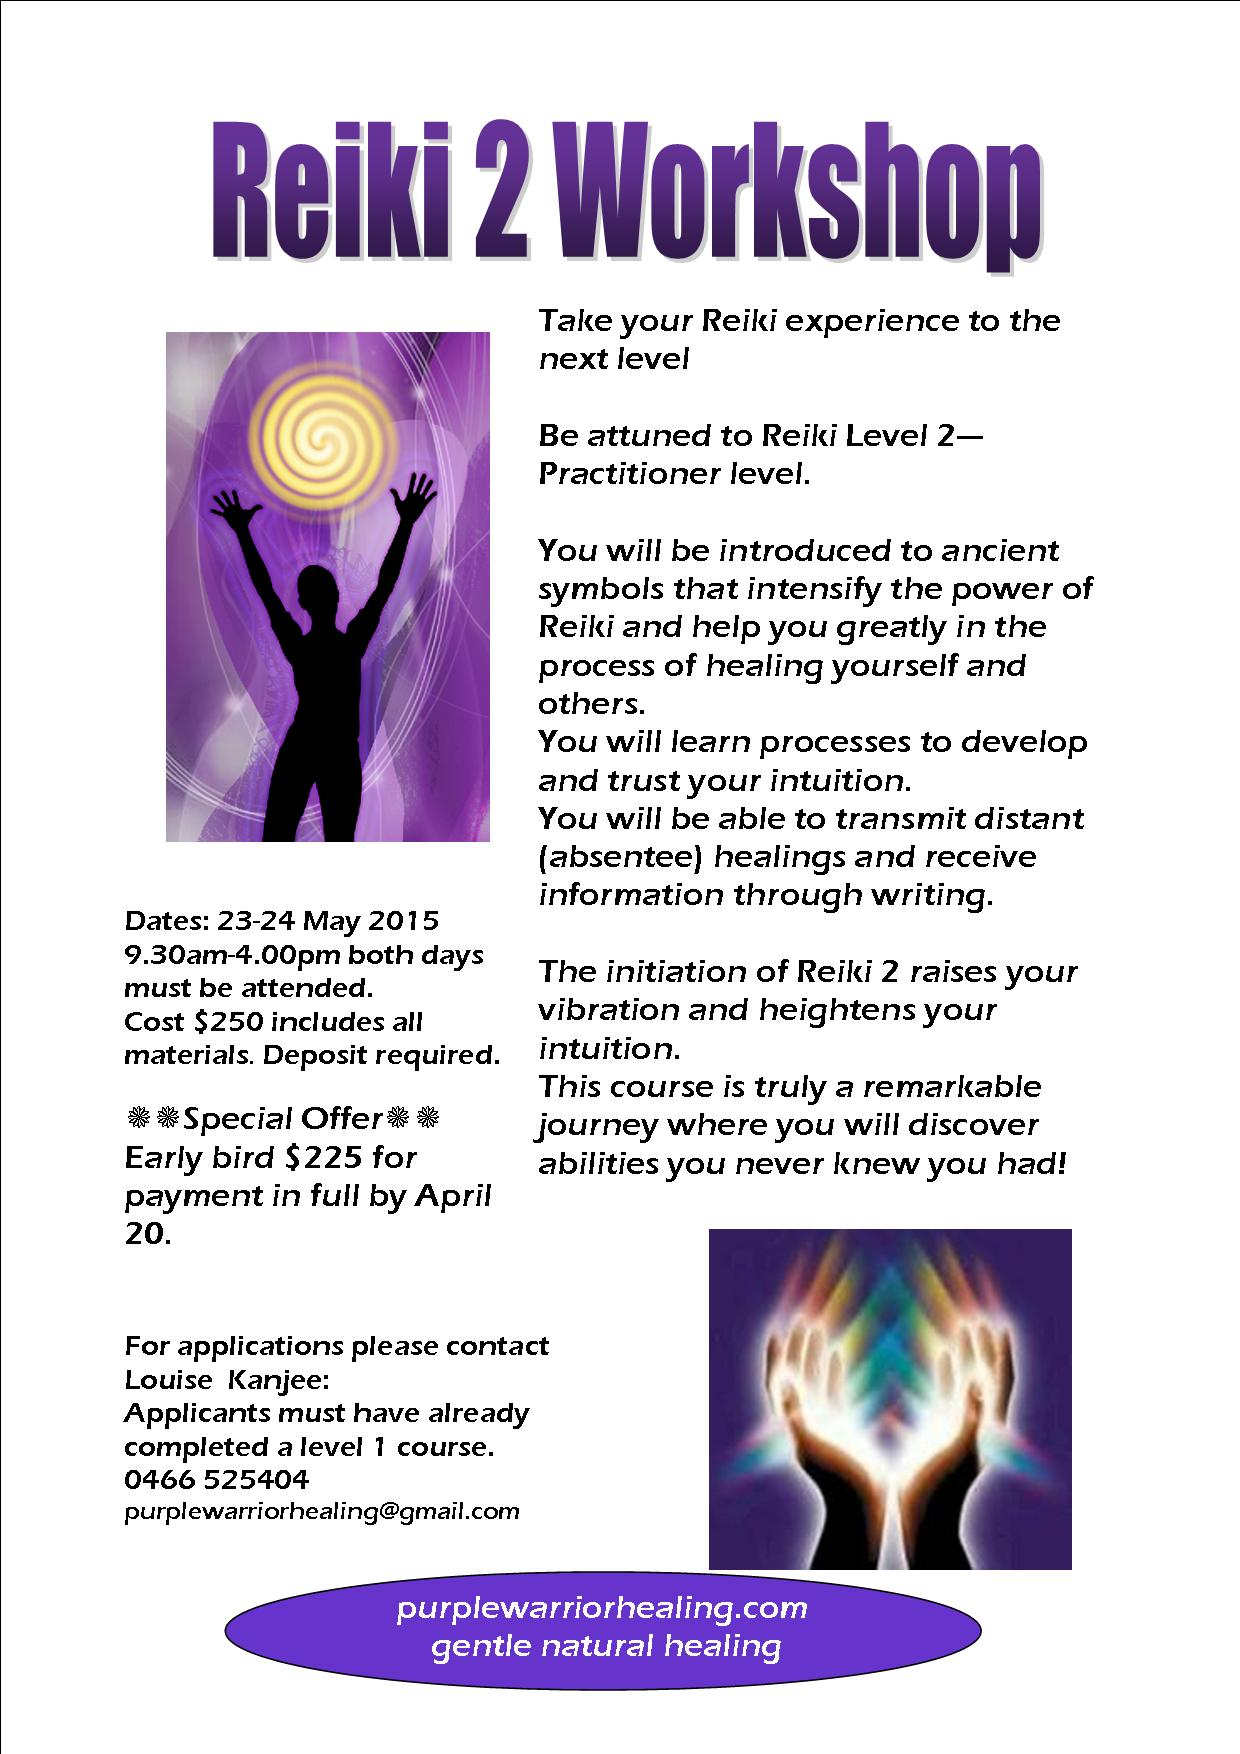 reiki 2 workshop flyer